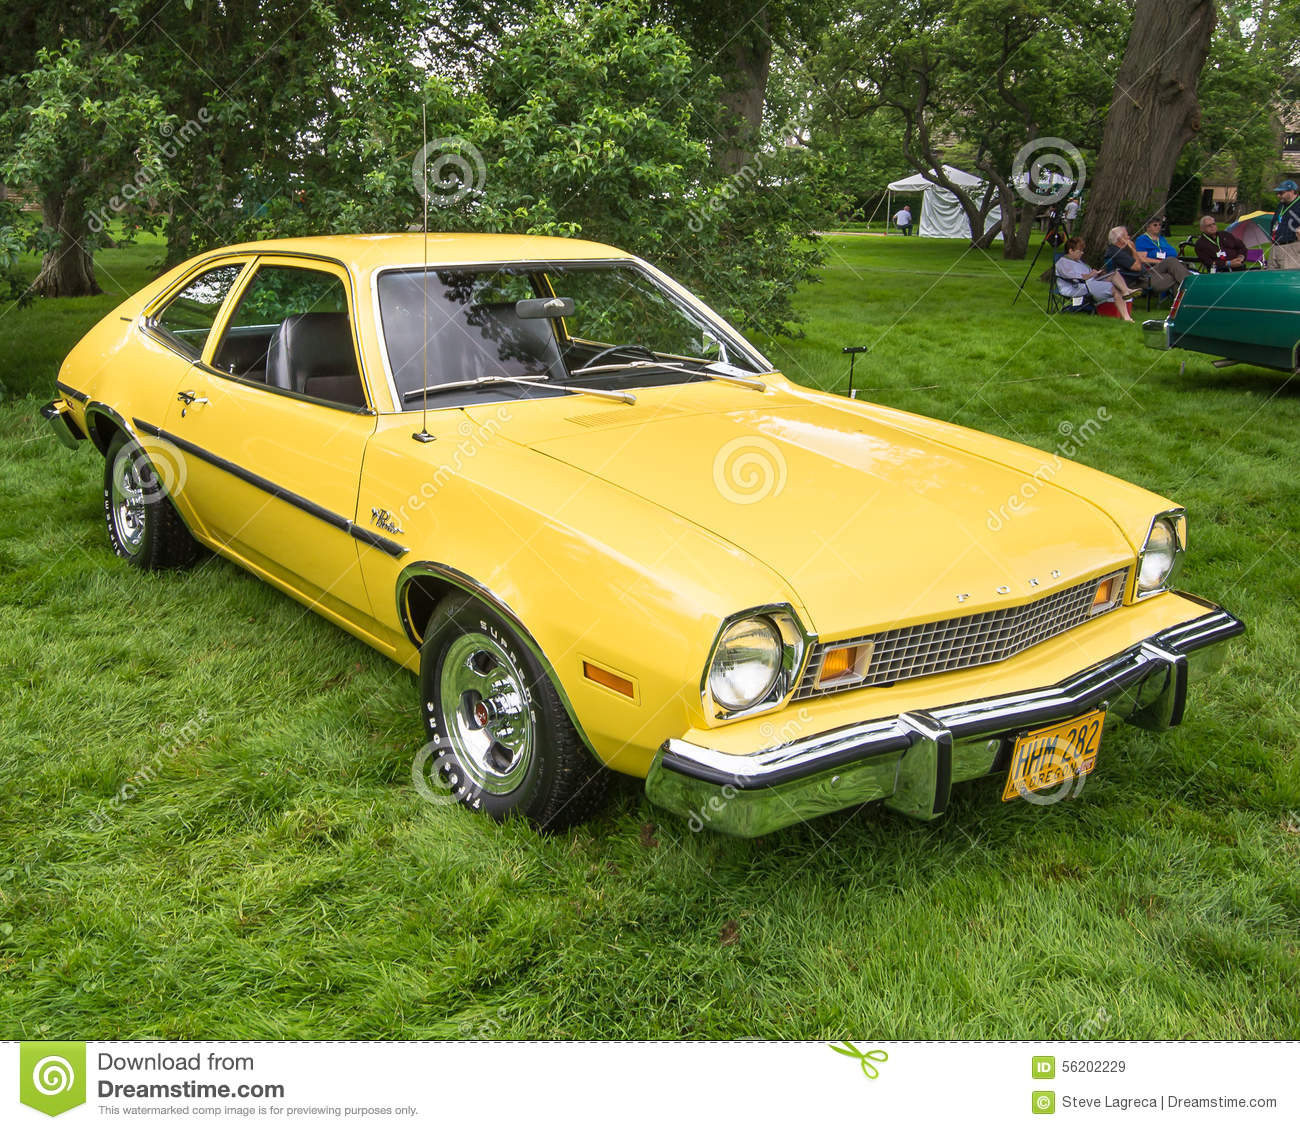 1974 Ford Pinto Lineup: 1976 Ford Pinto Runabout Editorial Photo